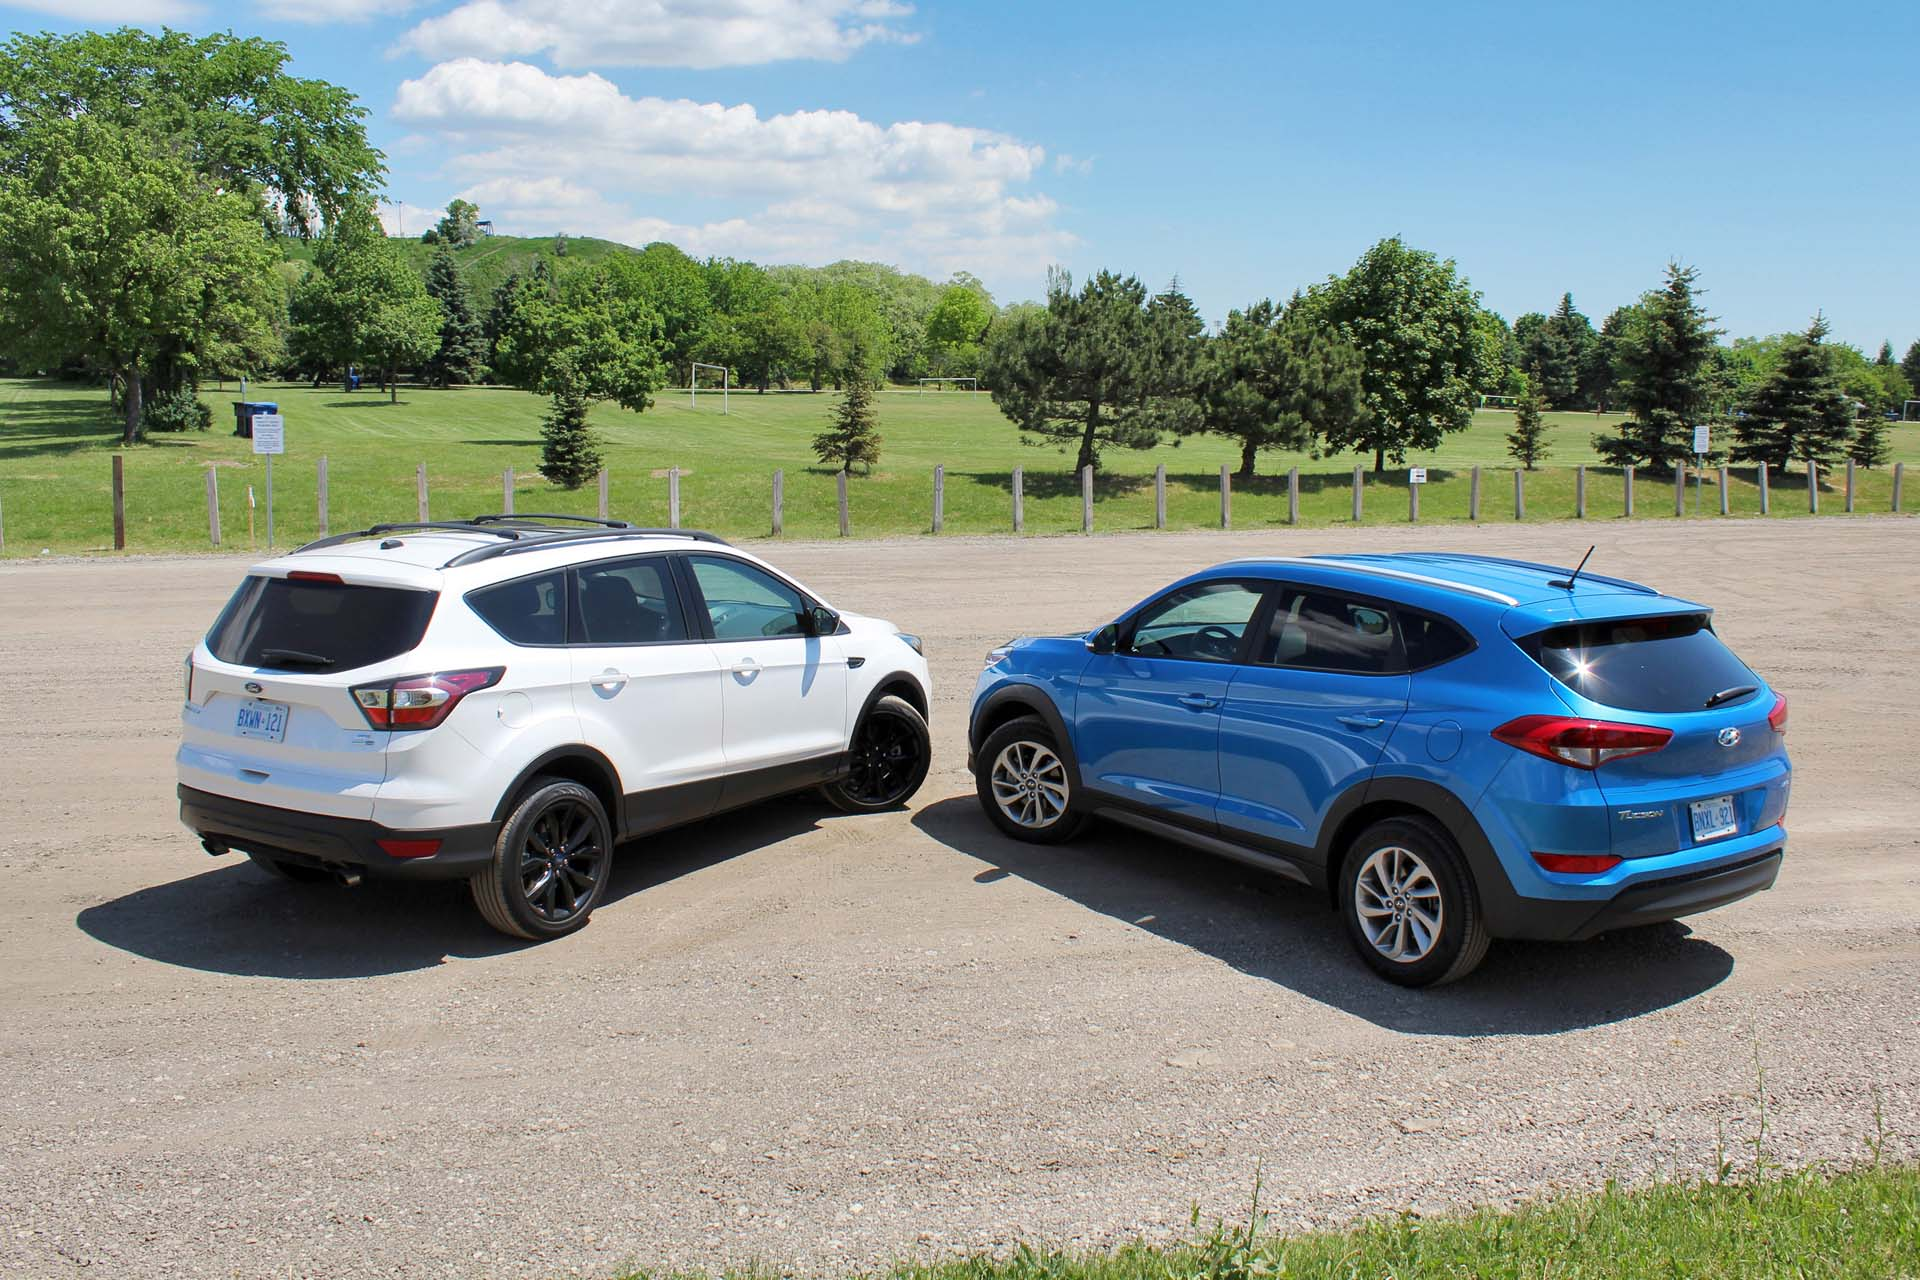 2017 ford escape vs 2016 hyundai tucson 2017 ford escape vs 2016 ...